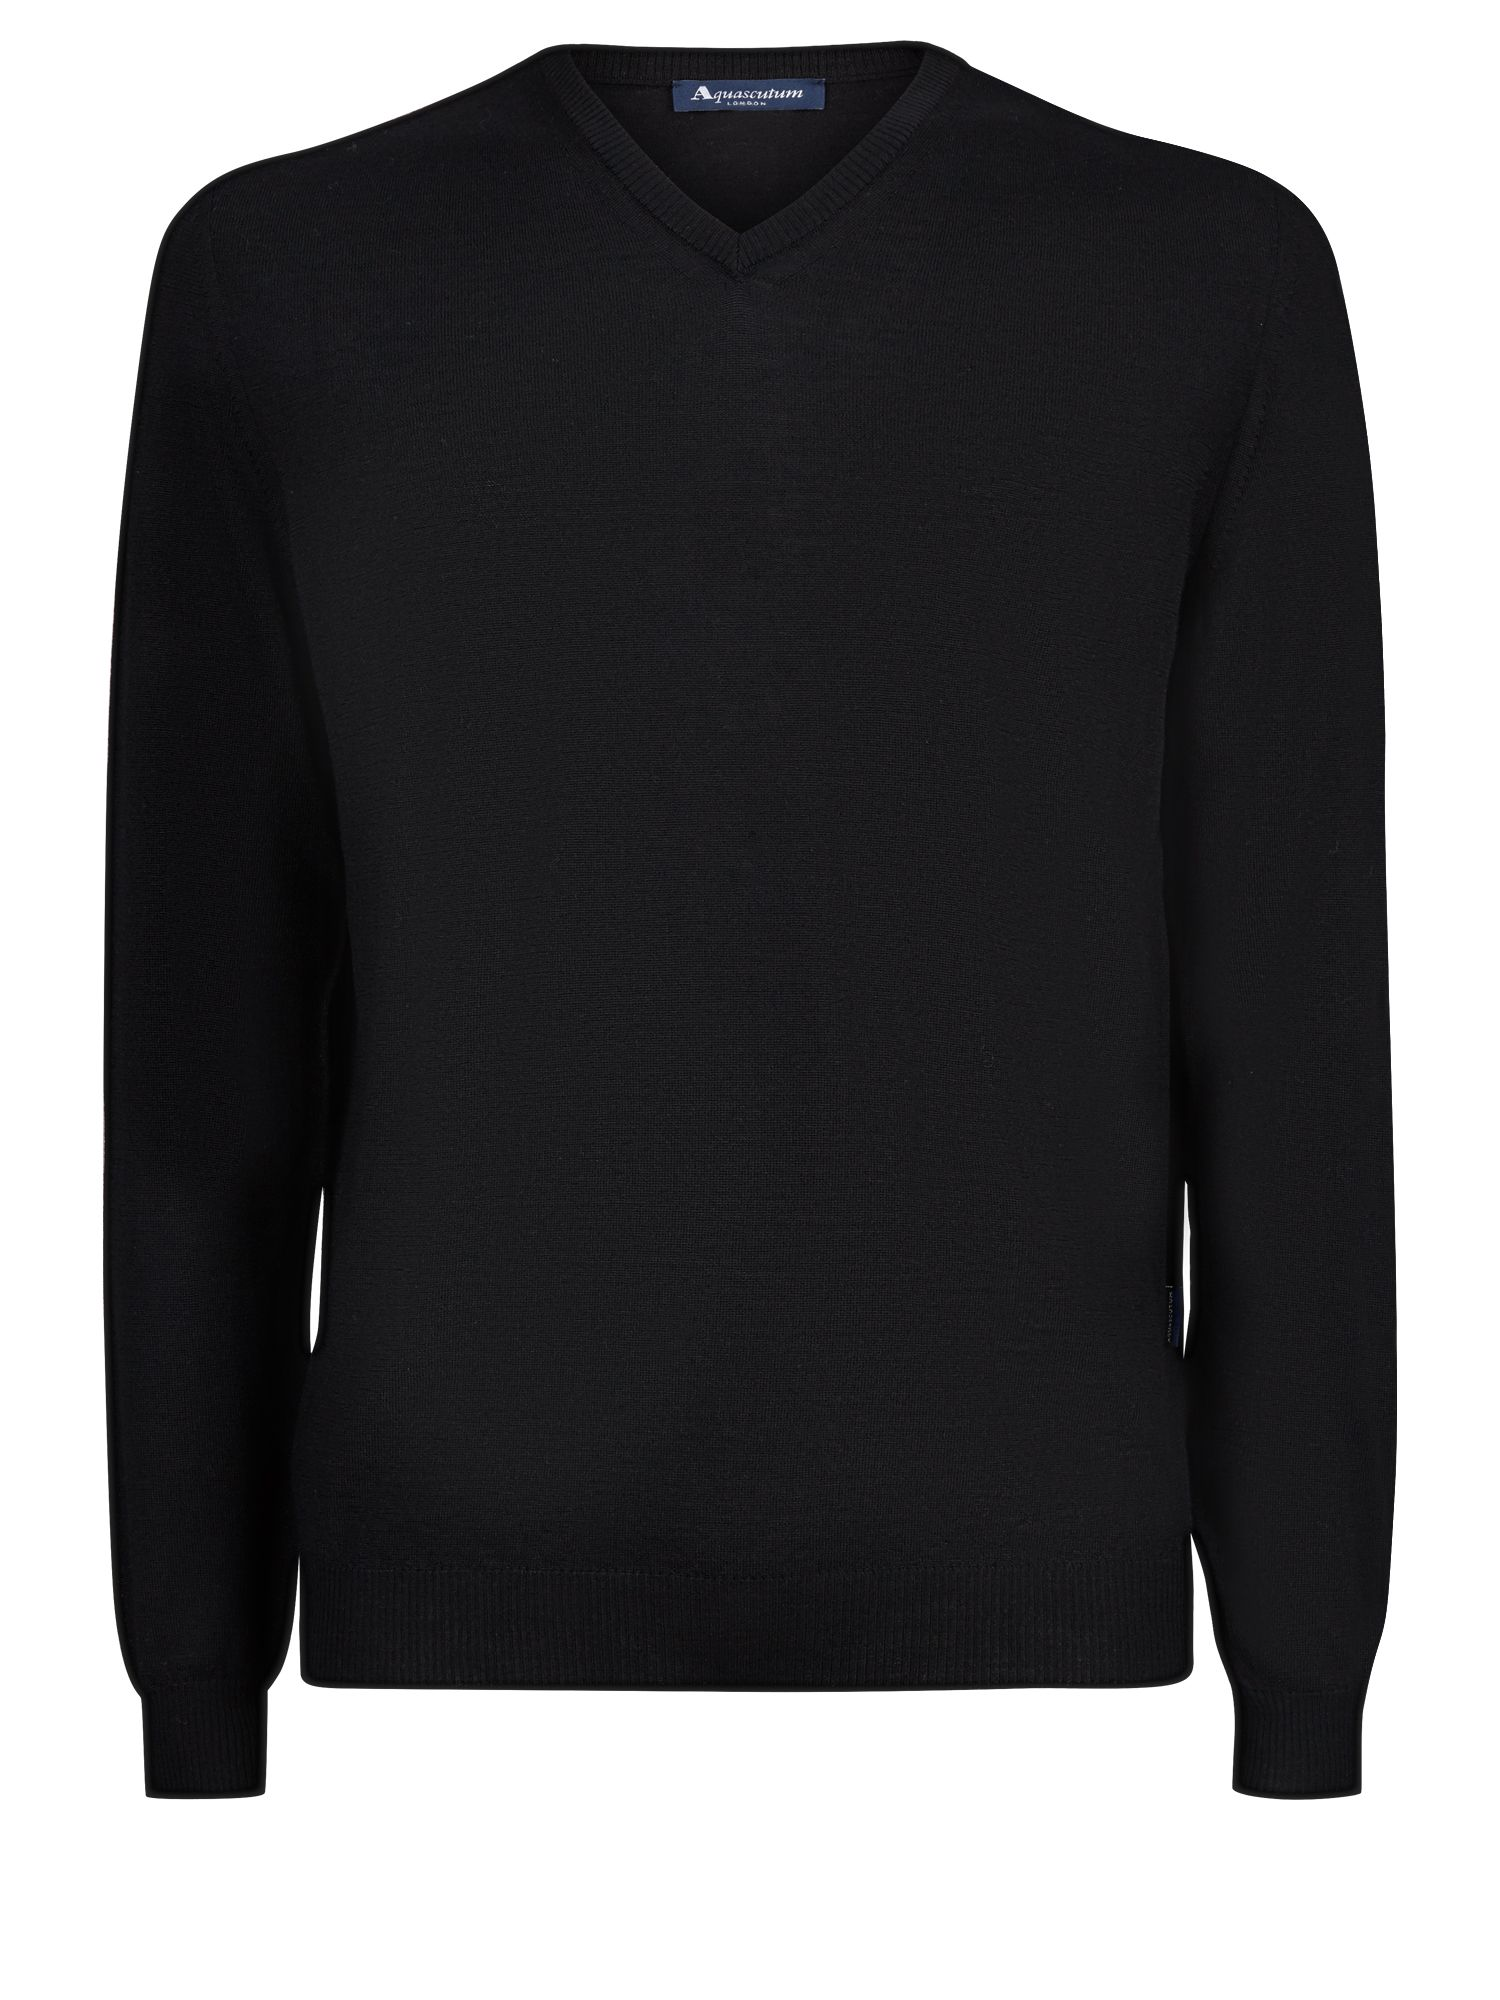 Mens Aquascutum Crowe Vee Knit Black